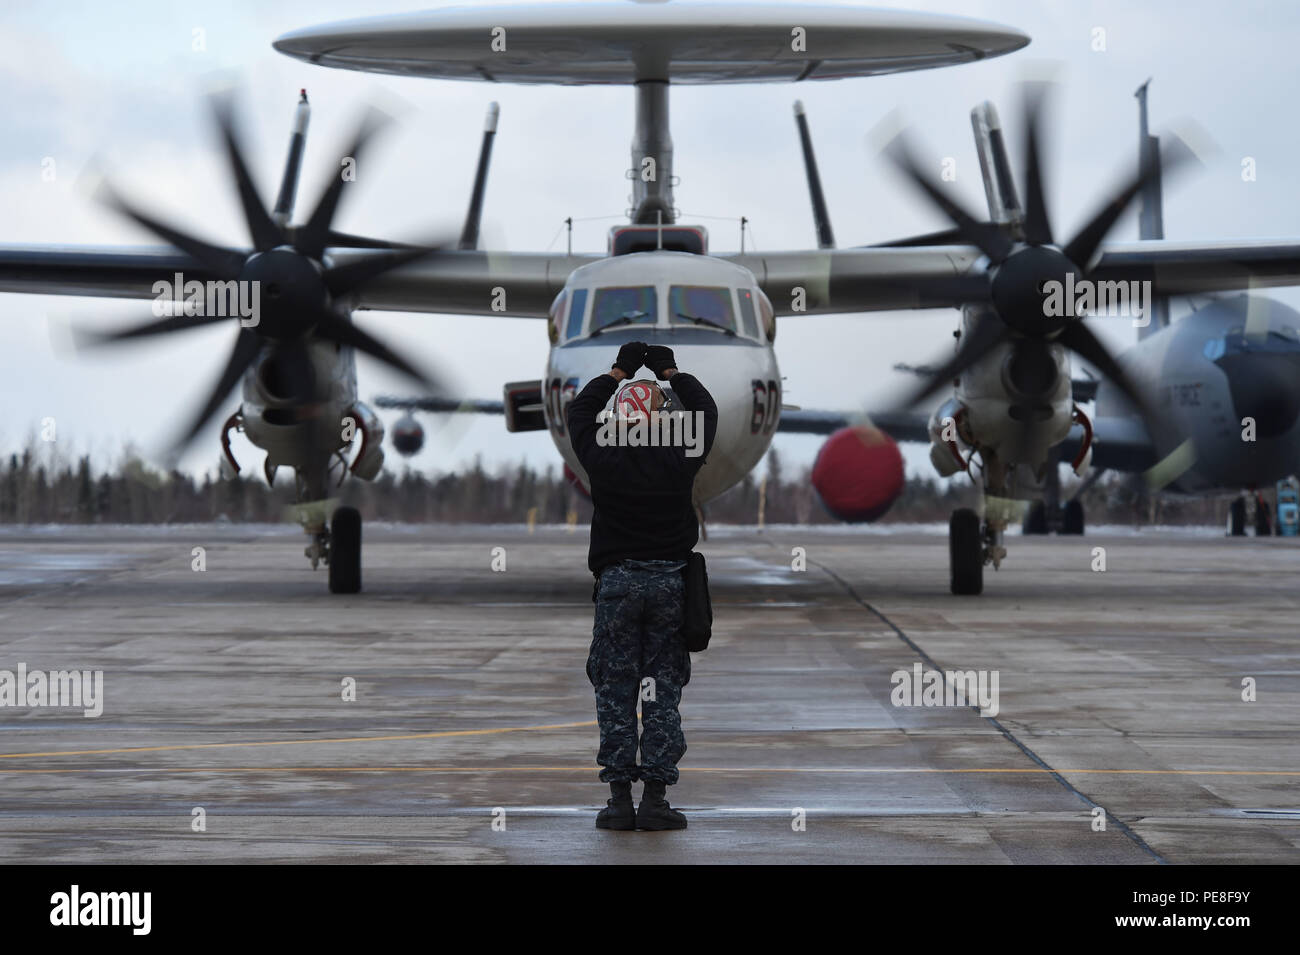 Angel Flight Down High Resolution Stock Photography And Images Alamy